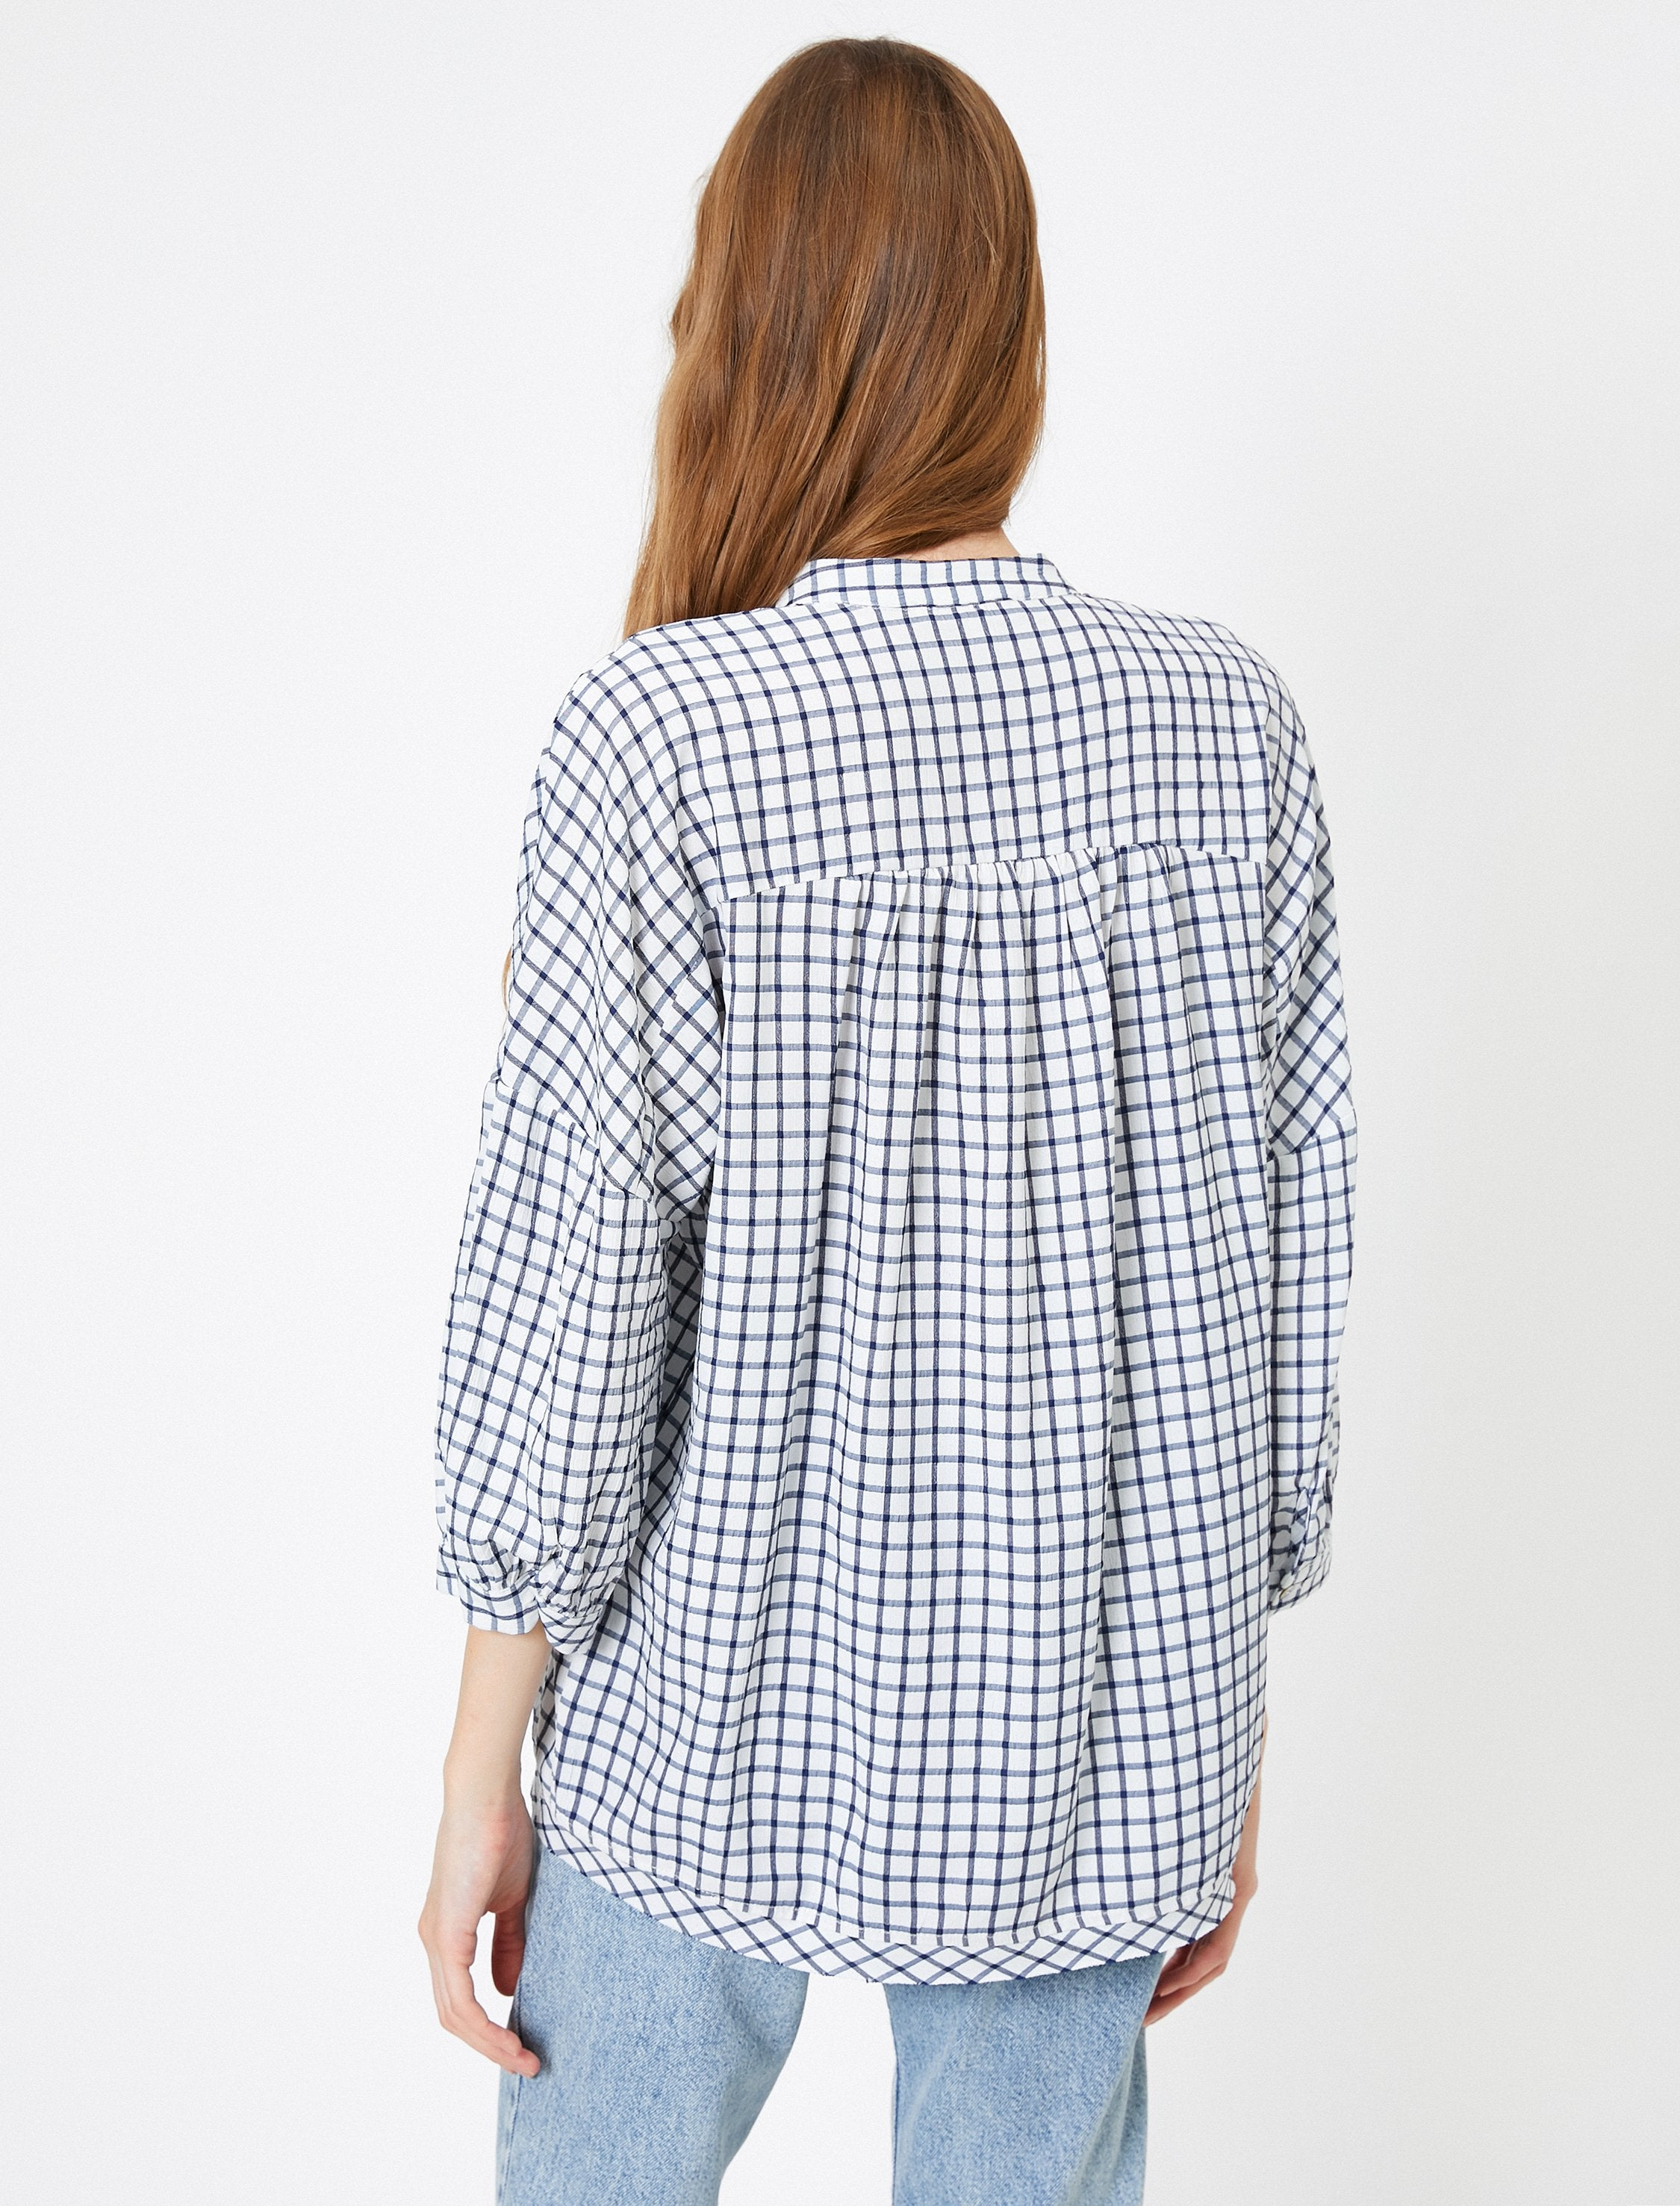 Oversized Boyfriend Check Shirt in Navy